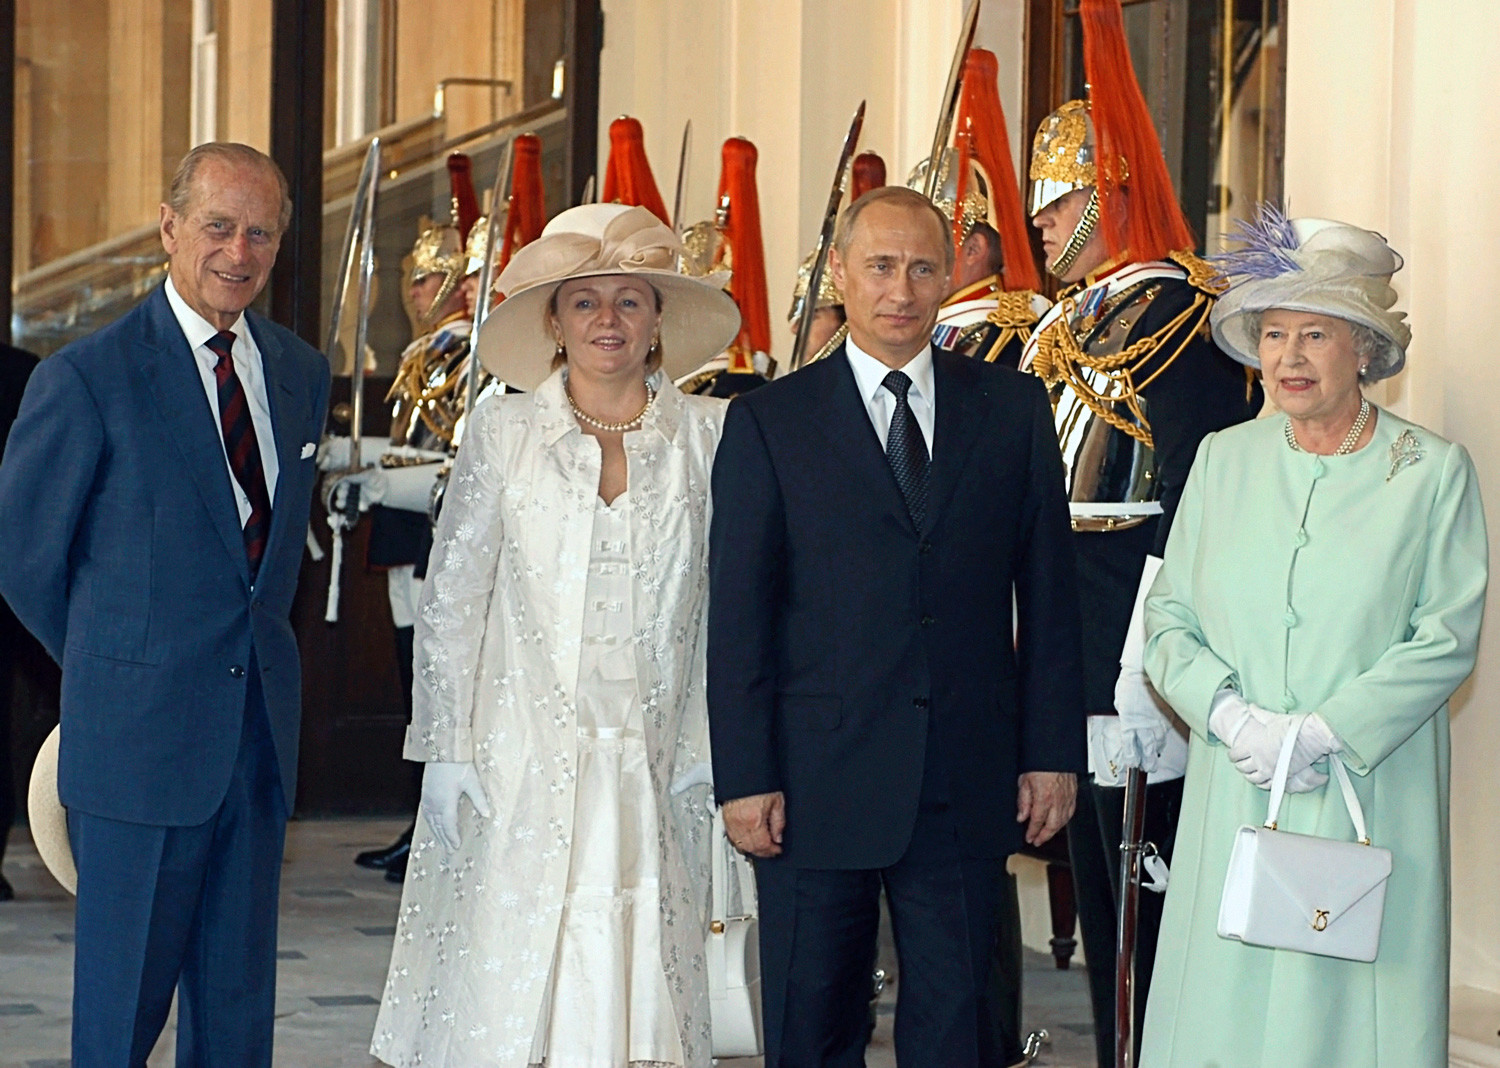 Vladimir Putin and Lyudmila Putina with Queen of Great Britain Elizabeth II and Duke of Edinburgh Philip in London.